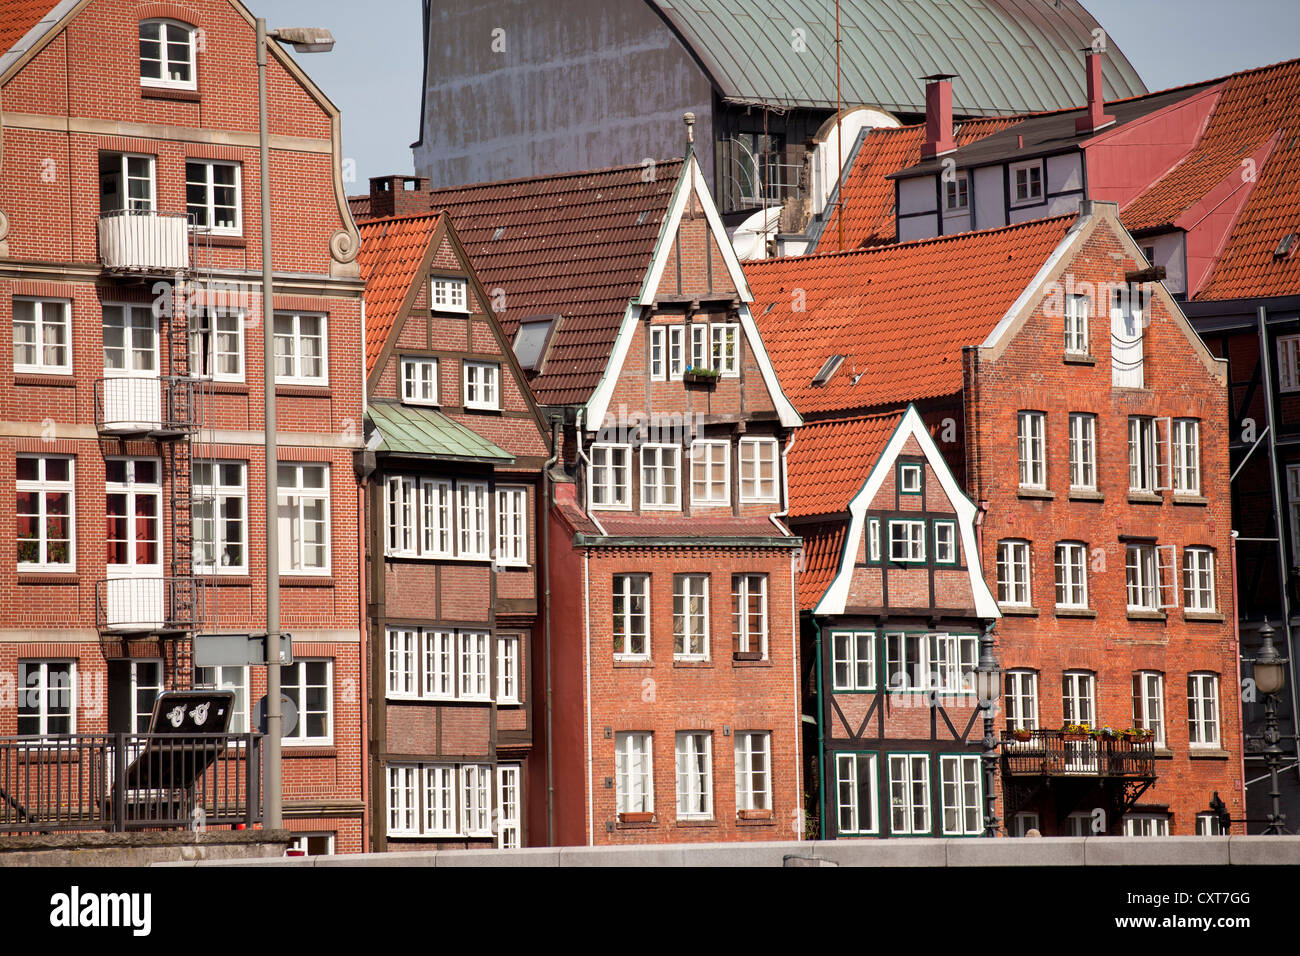 The last remaining row of historic town houses on Deichstrasse street, Free and Hanseatic City of Hamburg - Stock Image